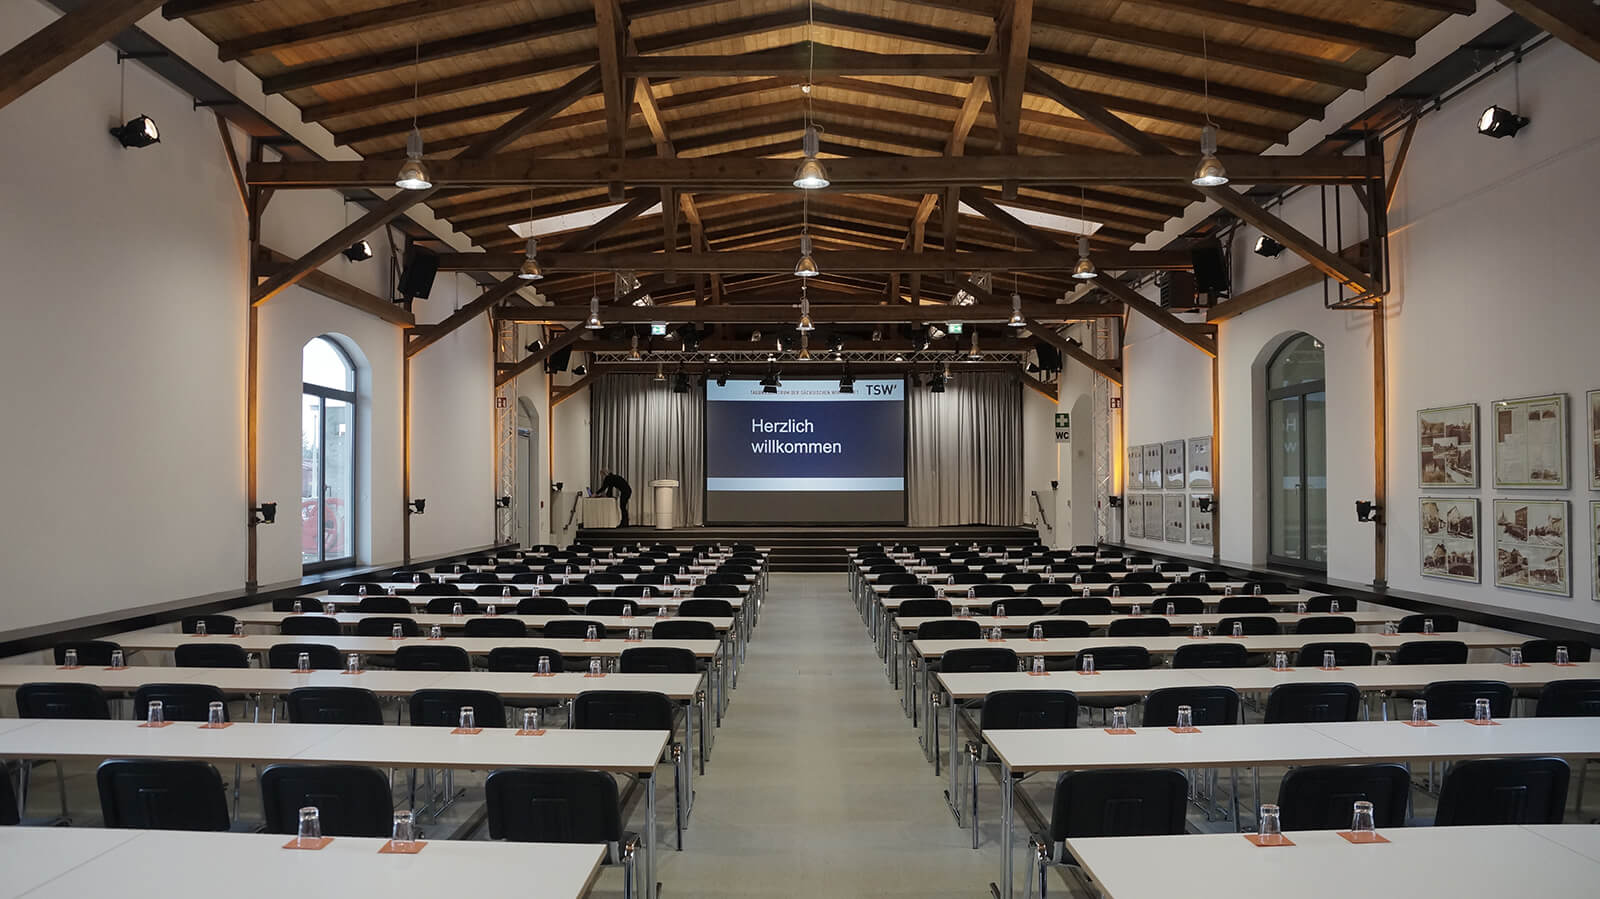 Güterboden Eventlocation in Radebeul bei Dresden – Präsentationtsevent